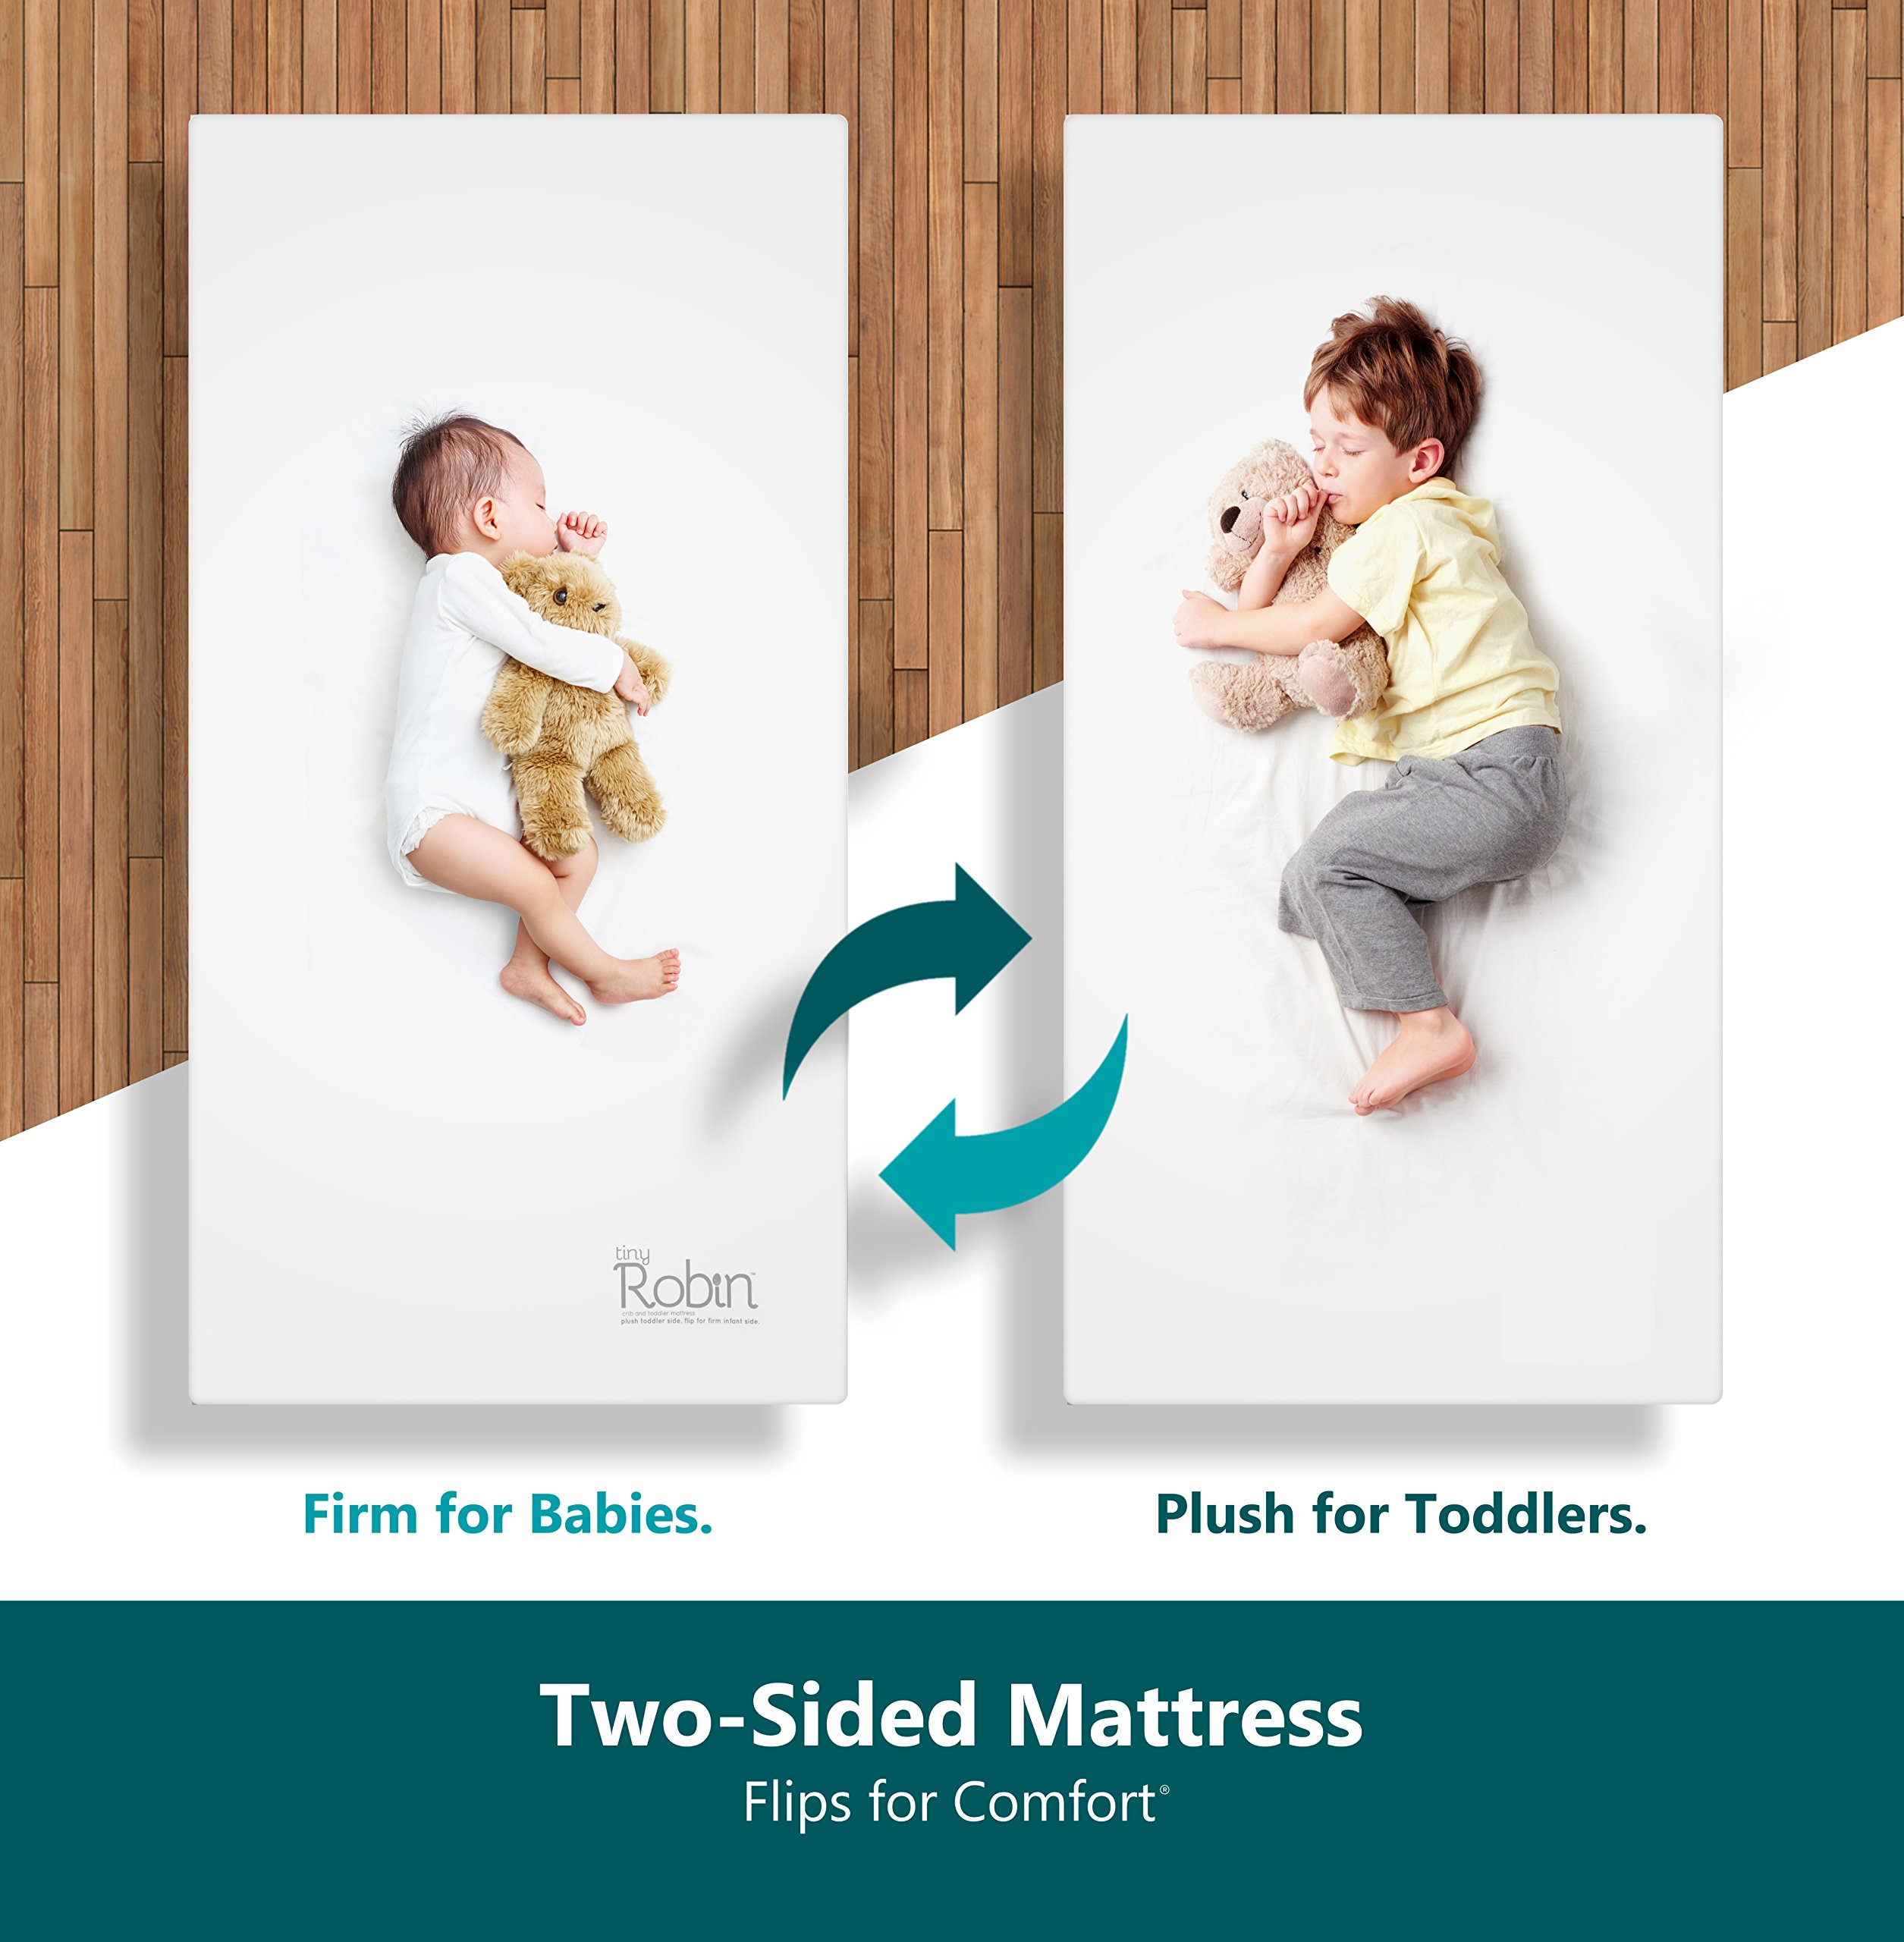 Moonlight Slumber Dual Sided Baby Crib Mattress. Firm Sided For Infants Reverse To Soft Side For Toddlers. Easy To Clean Waterproof And Odor Resistant. (Latest Version)